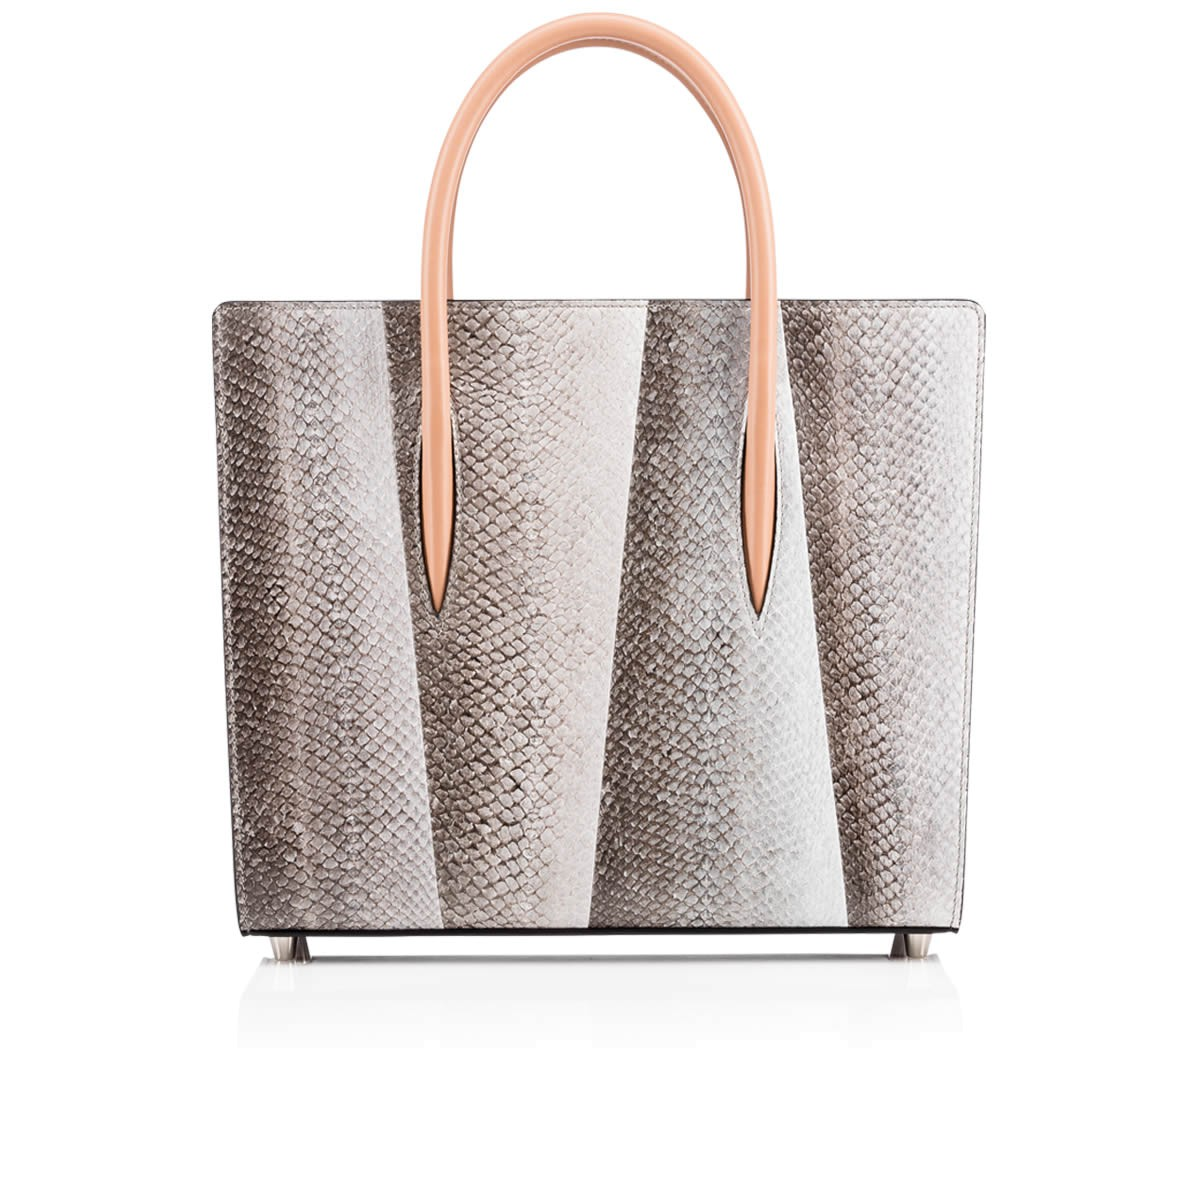 Paloma Medium Tote Bag Etain Salmon Skin - Handbags - Christian Louboutin